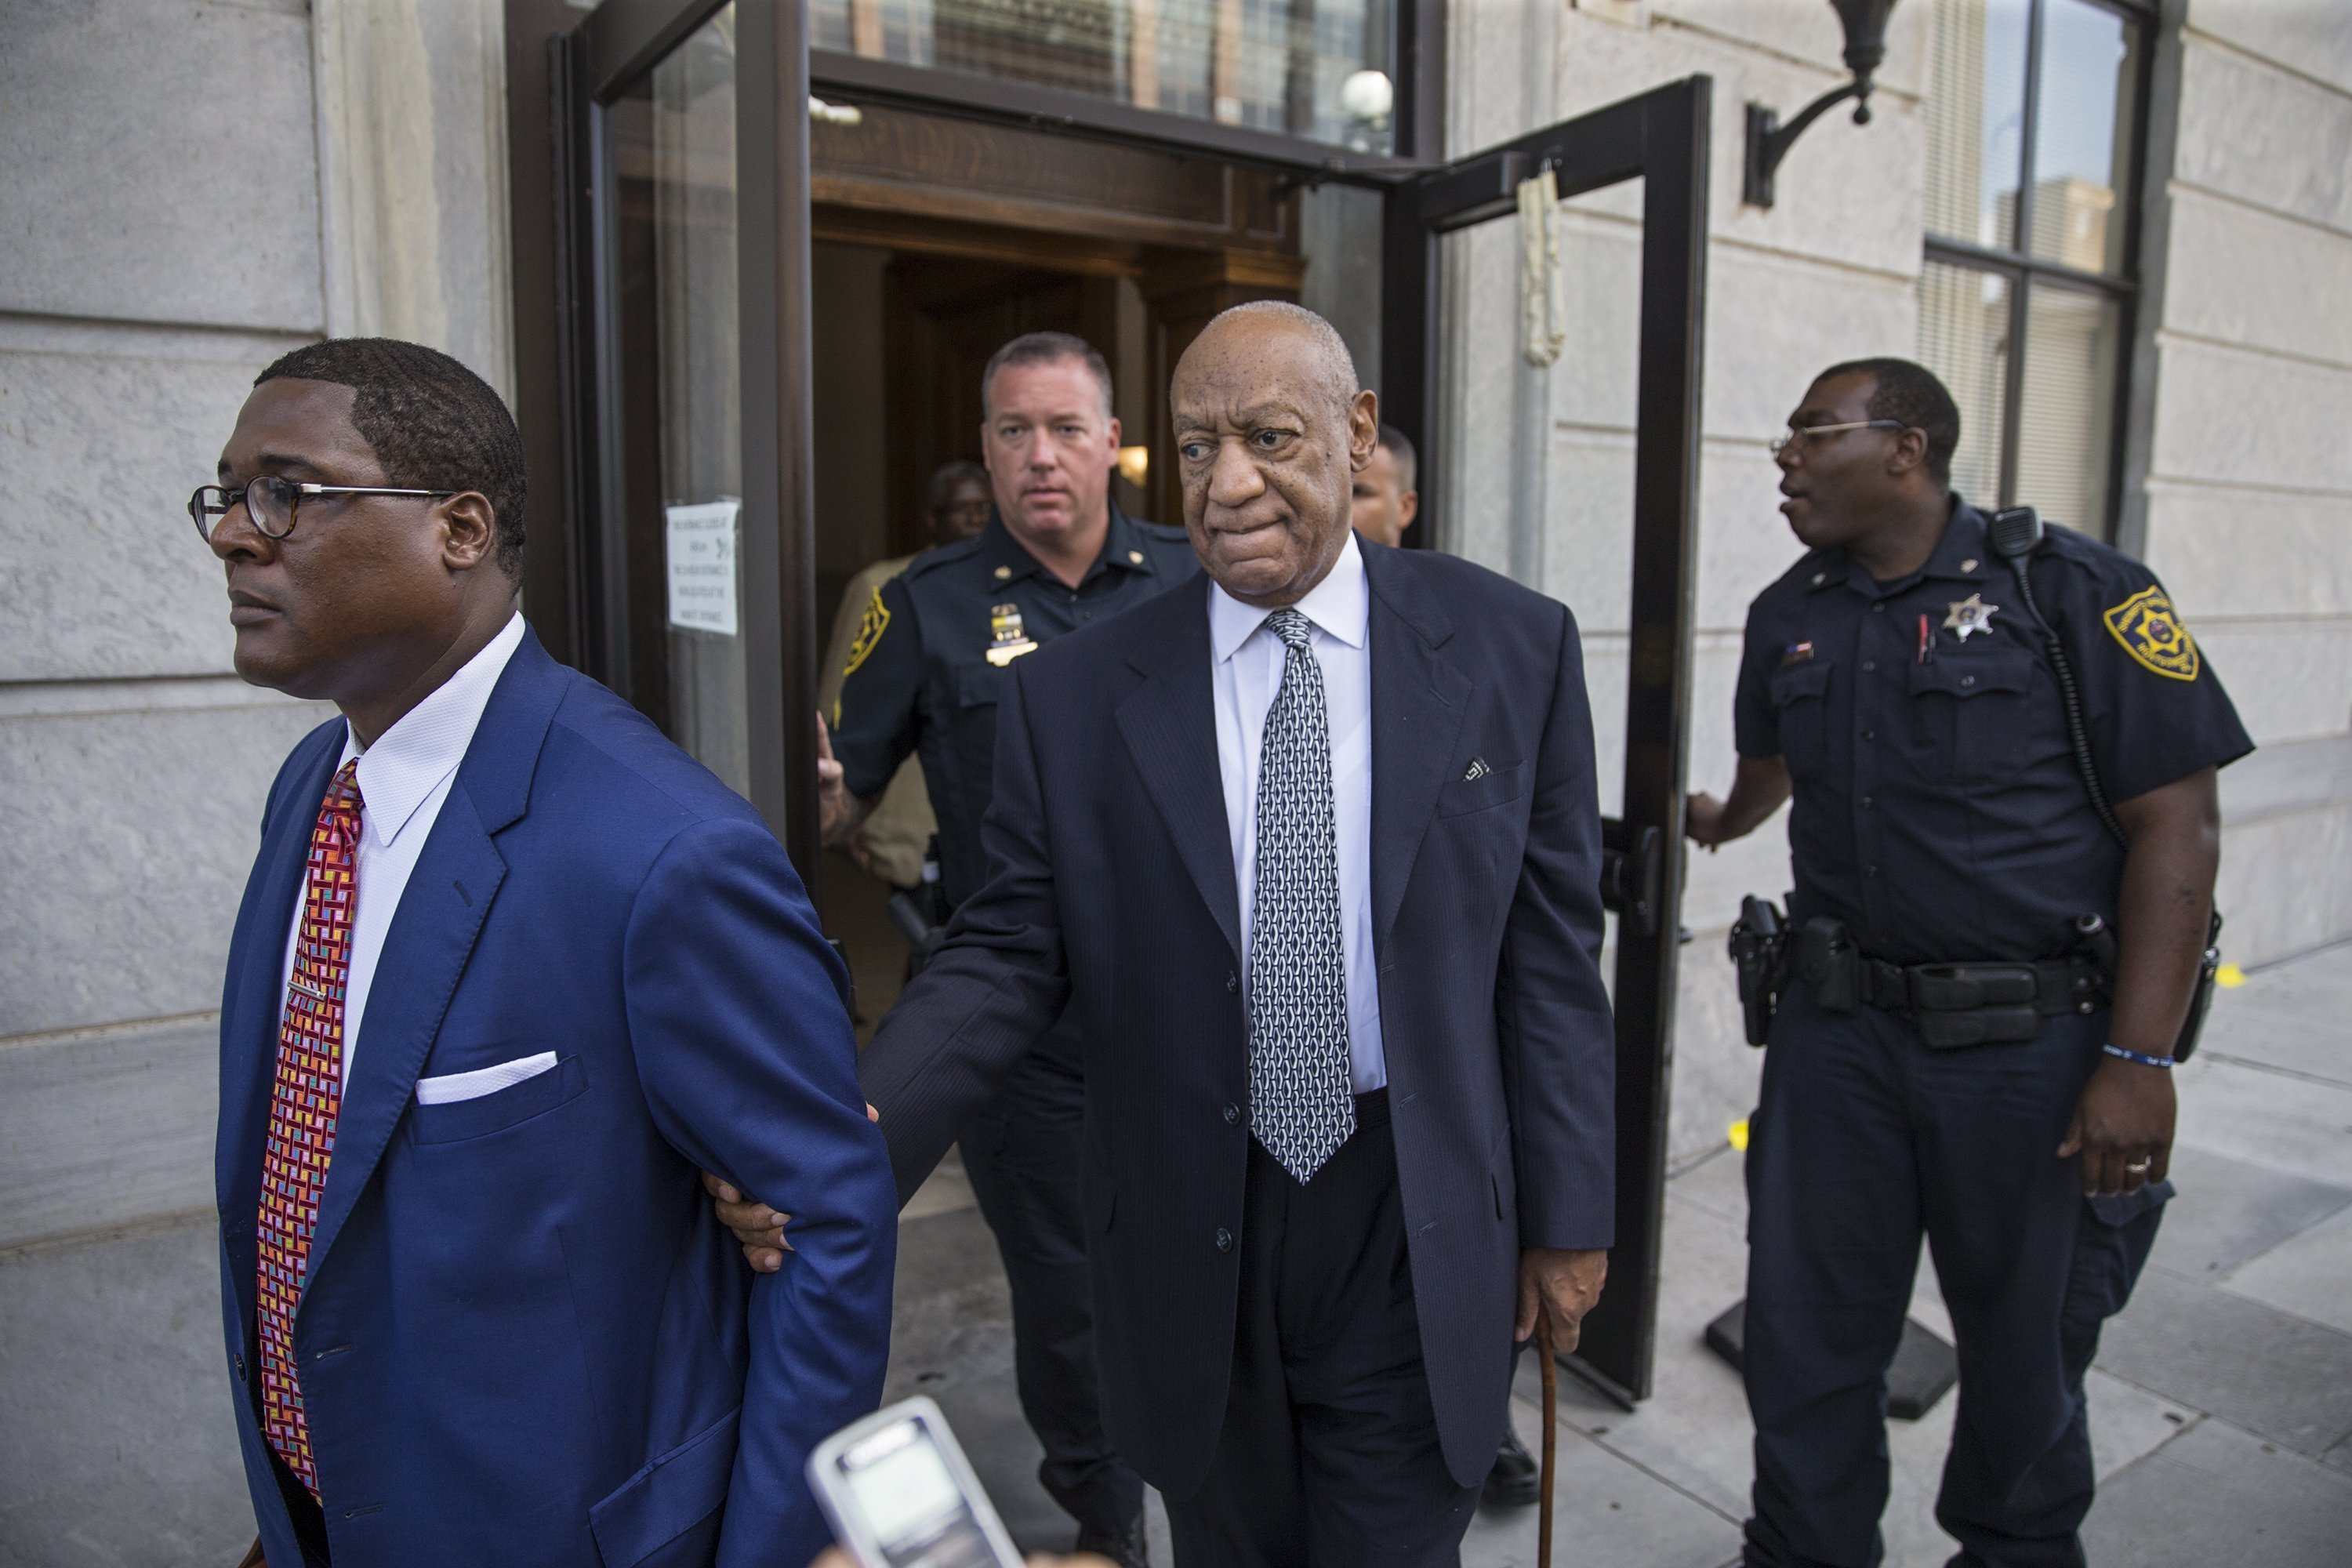 Bill Cosby is seen here with his publicist and his new legal team on Tuesday, August 22, 2017.